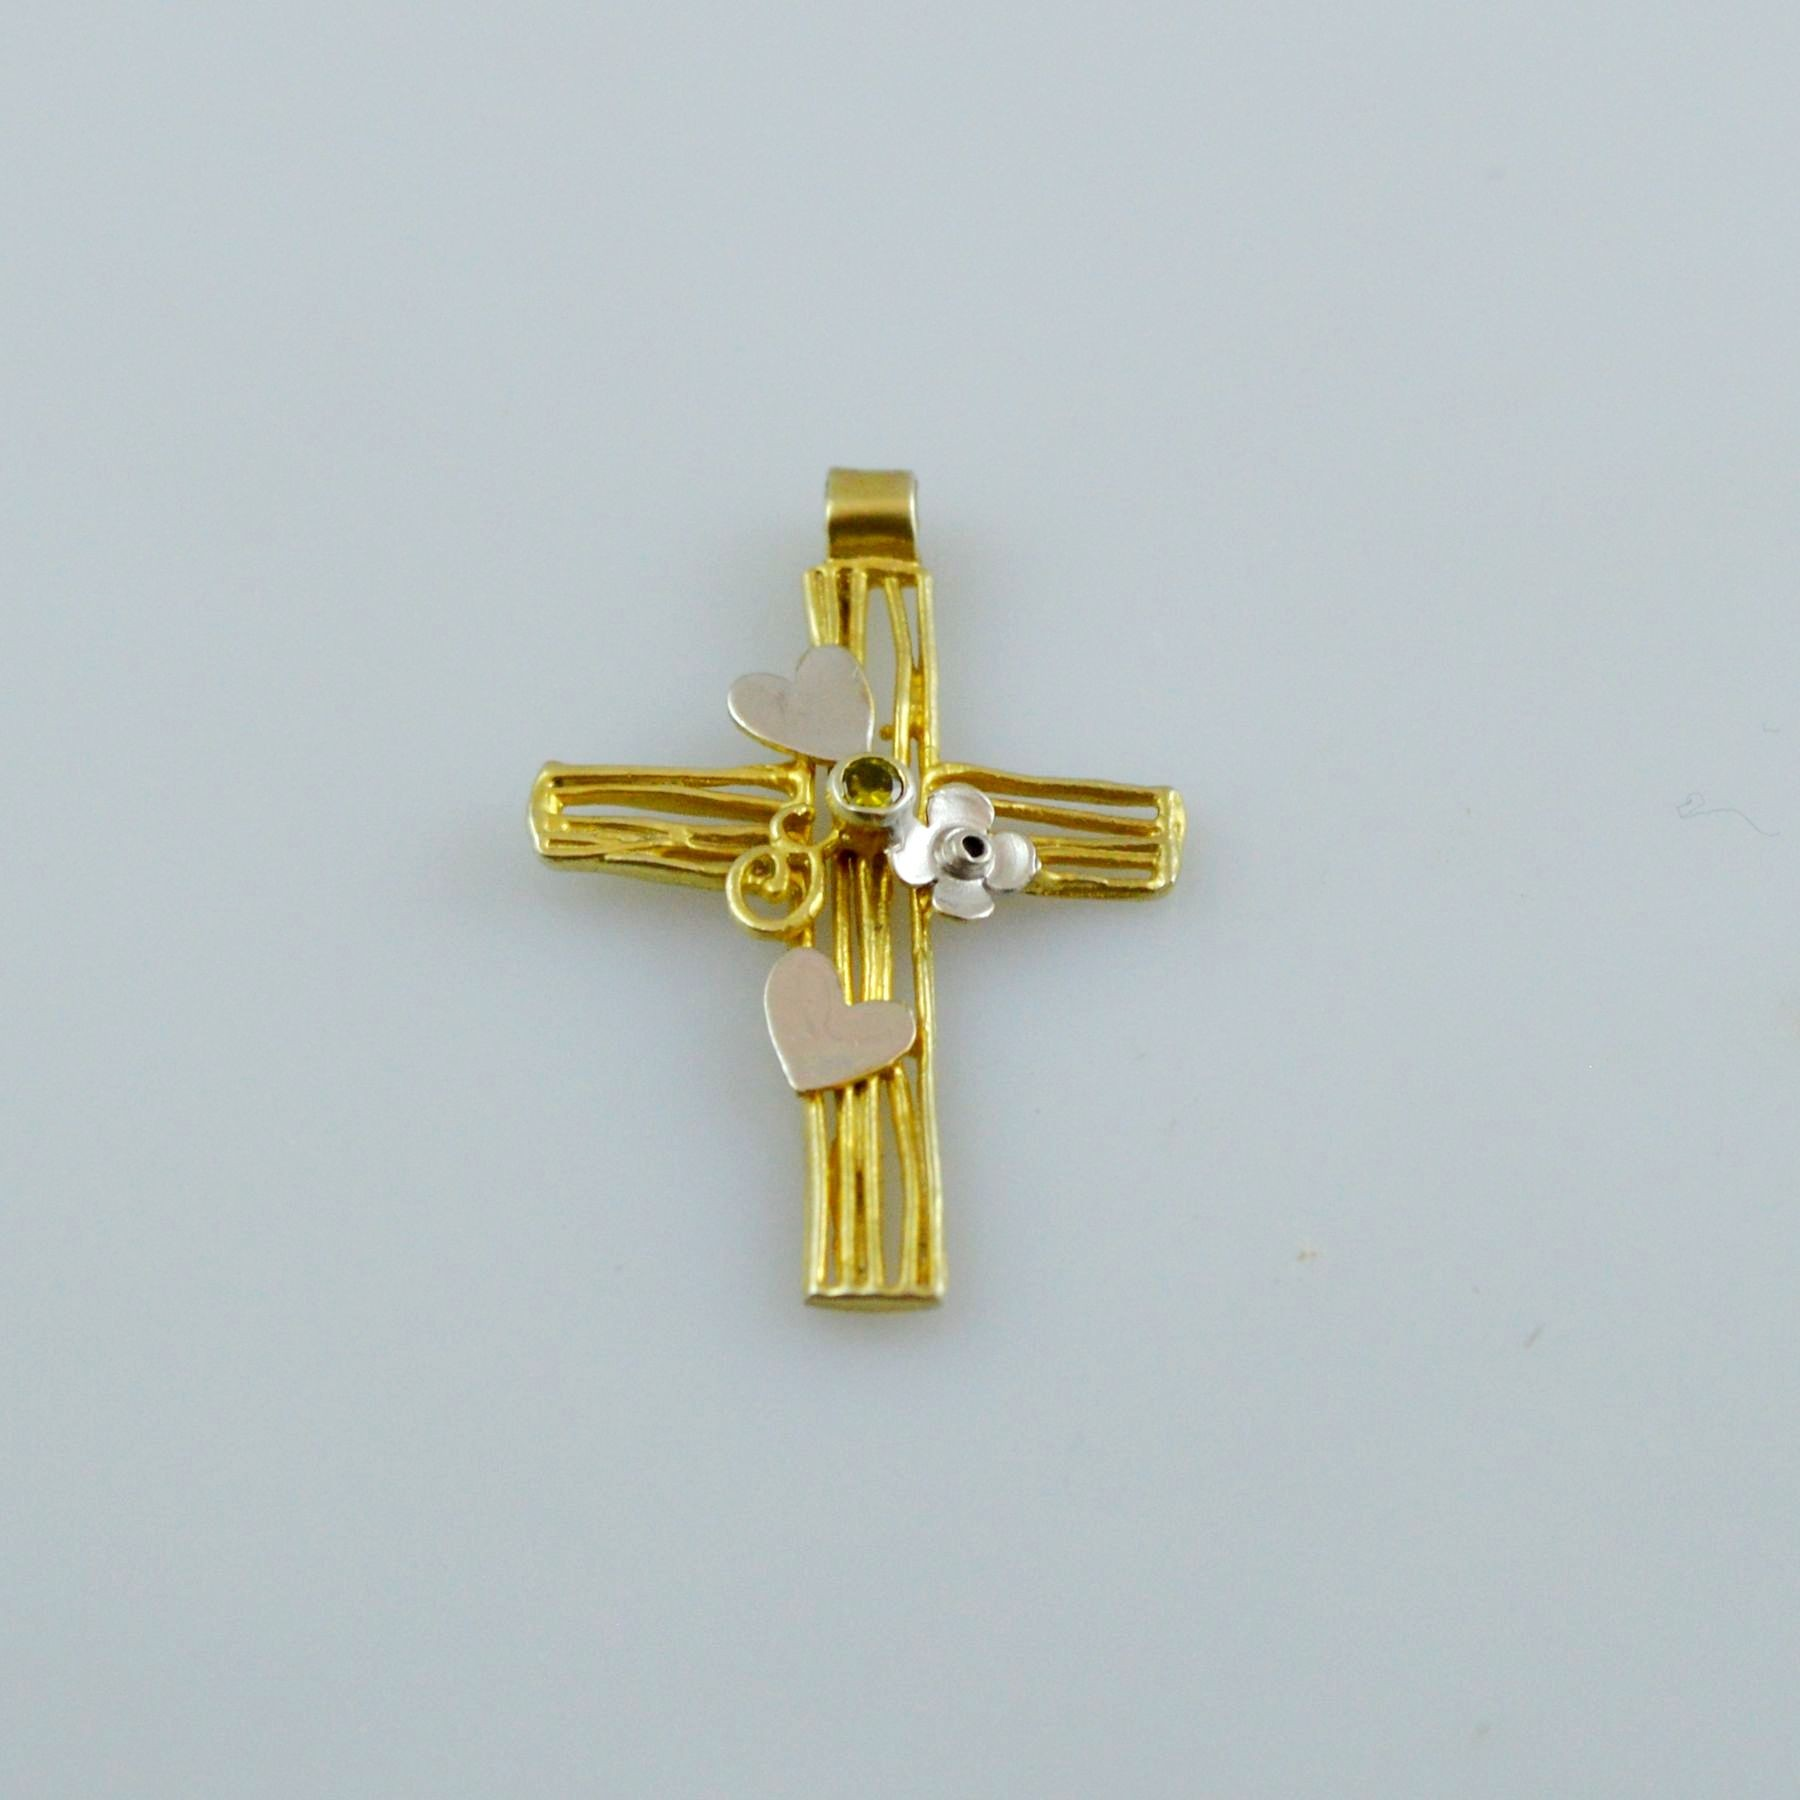 Gold or white gold cross 14K or 18K with synthetic stones or semiprecious stones with diamonds brilliant cut